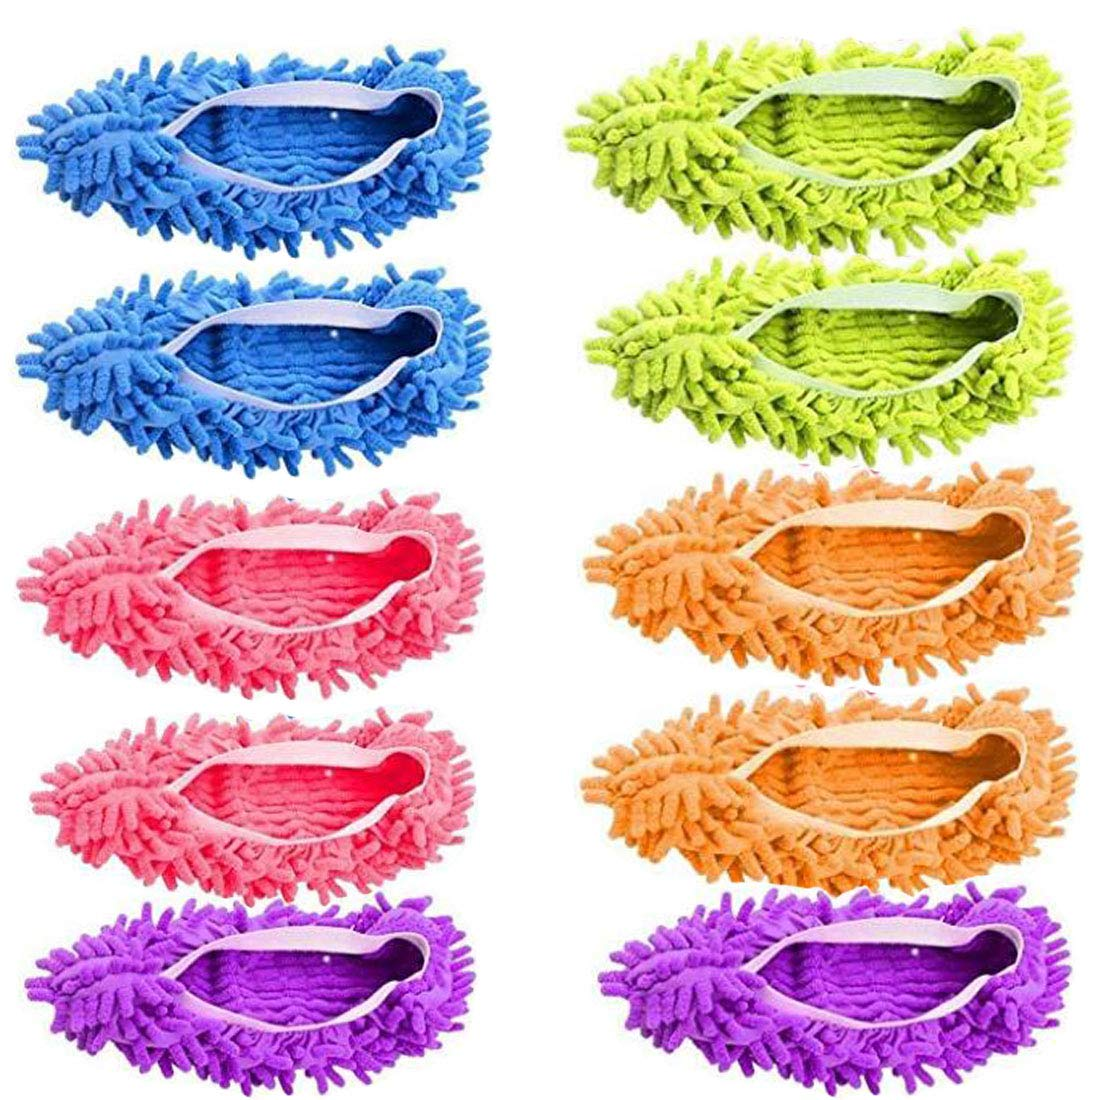 5 Pairs Washable Dust Mop Slippers Microfiber Cleaning Mop Slippers Shoes Dust Floor Cleaner Multi-Function Floor Cleaning Shoes Cover (Green,Blue,Orange,Purple) by QKAIFRYSUG